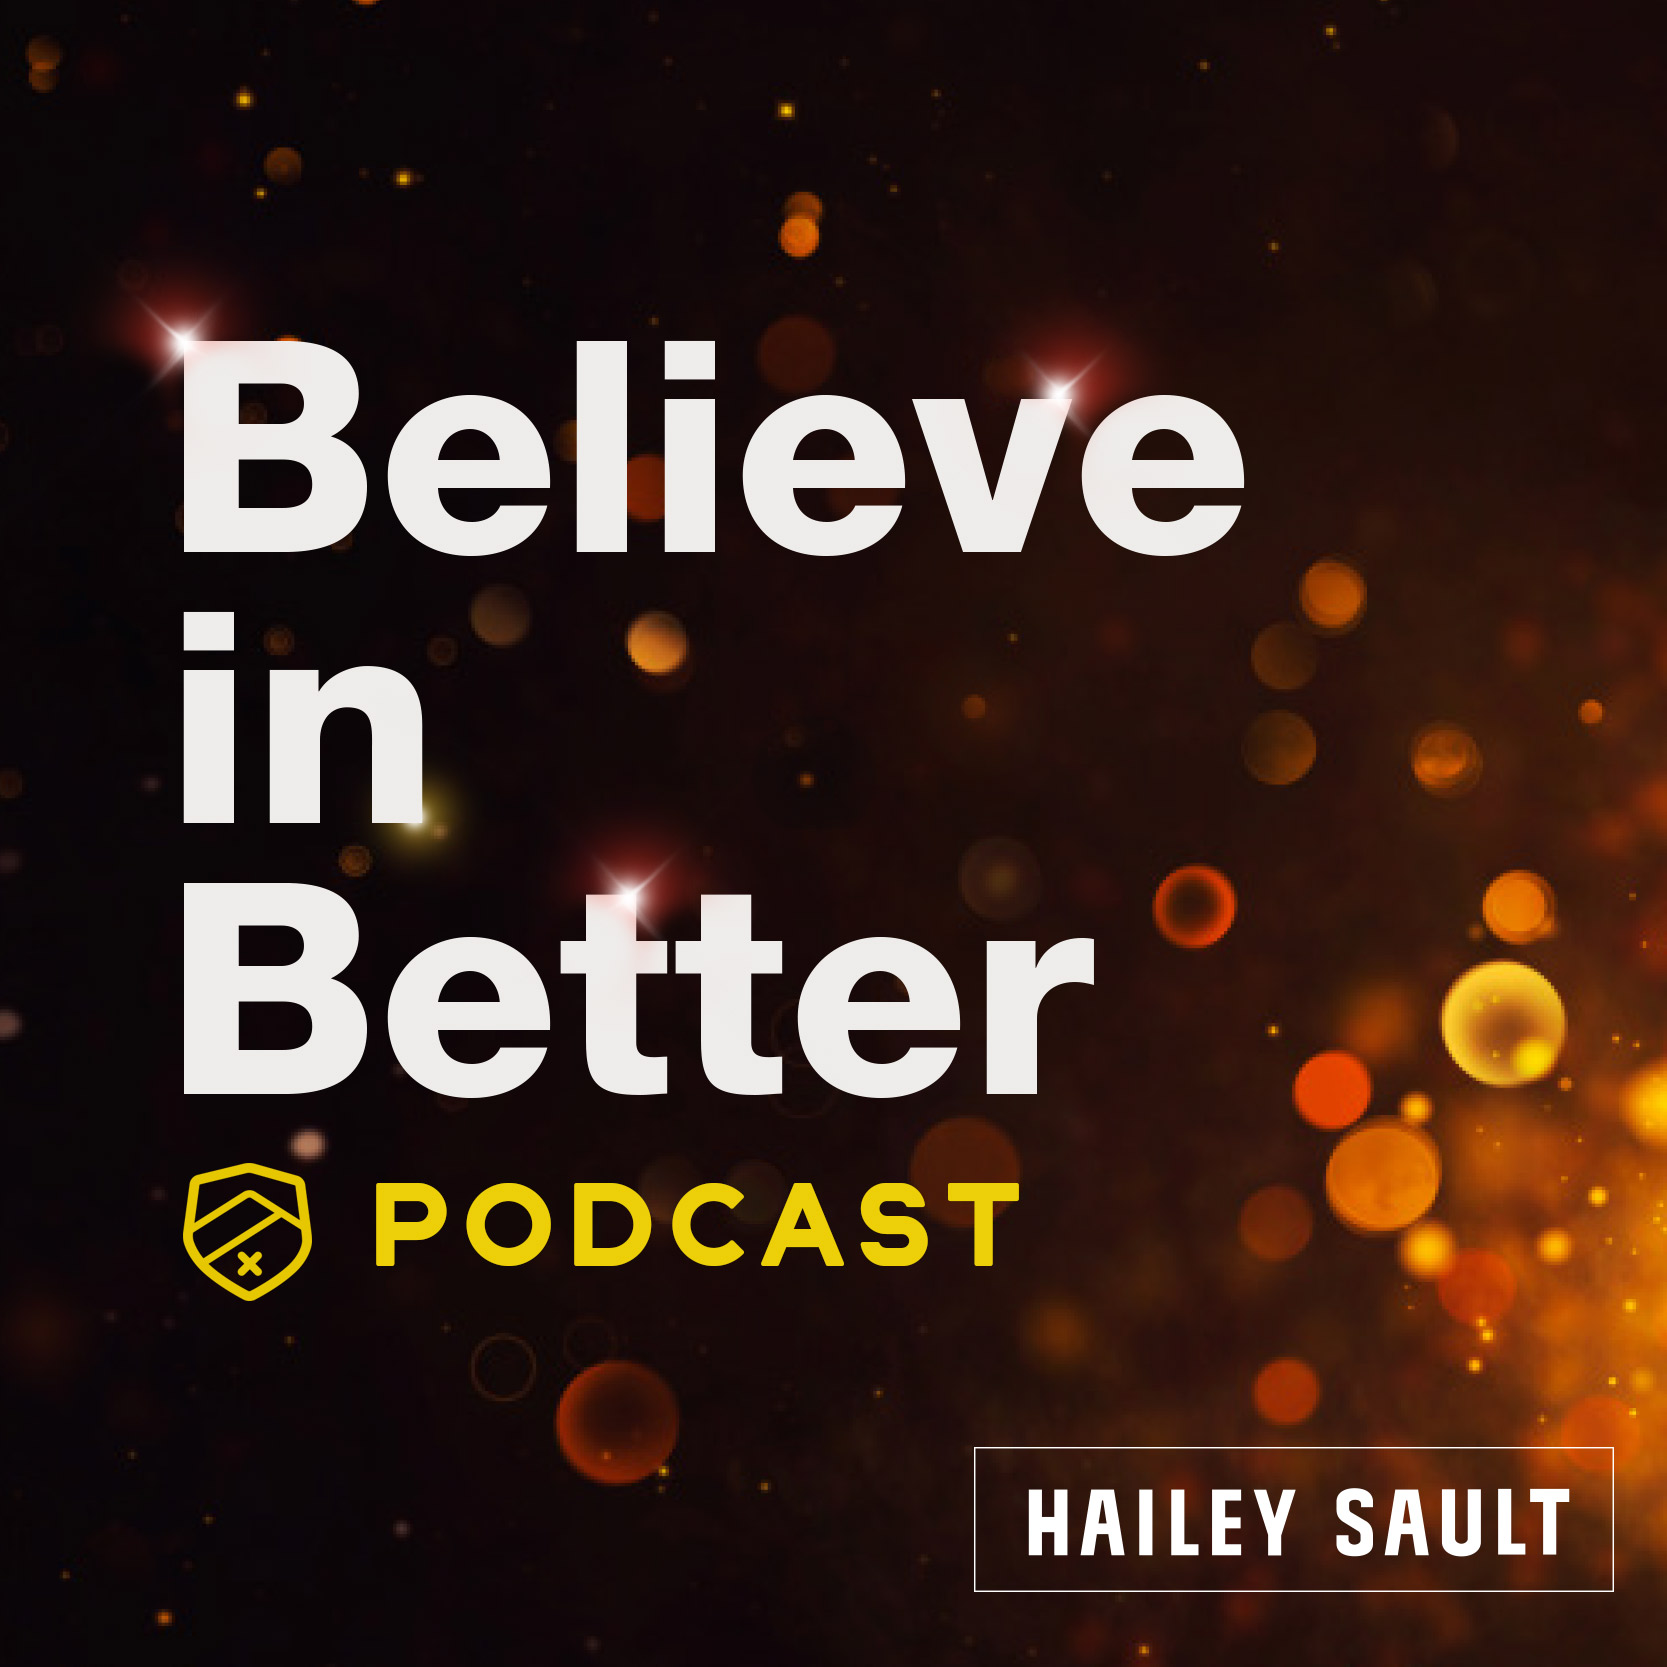 Believe in Better Podcast